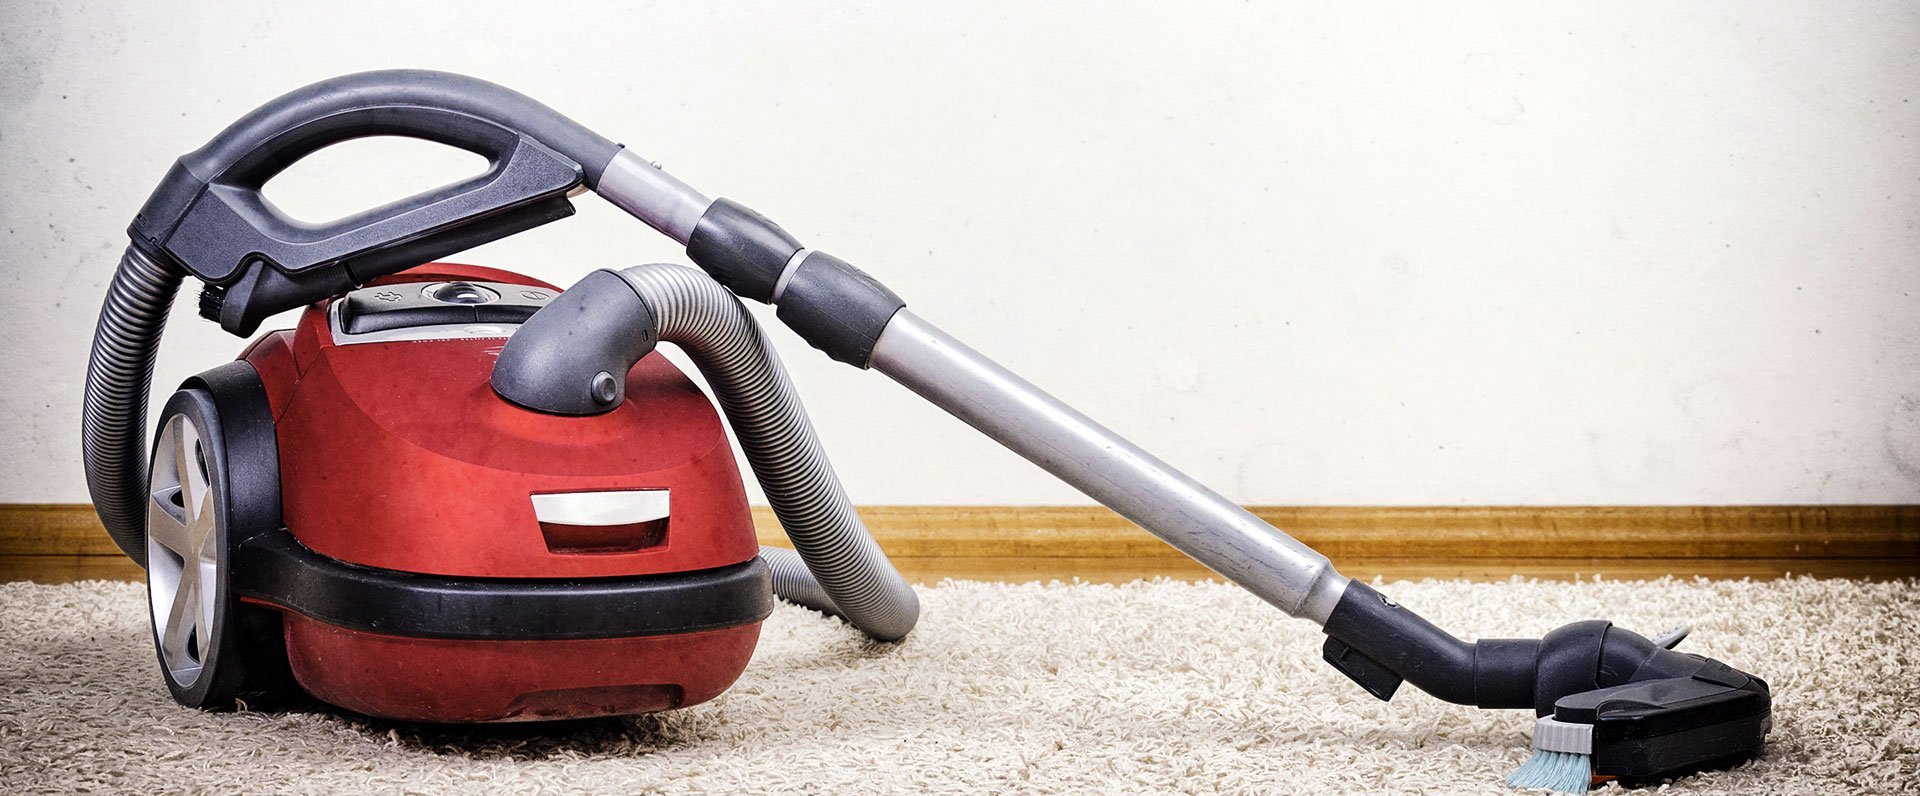 Vacuum Cleaner Repairs Service In Chelmsford